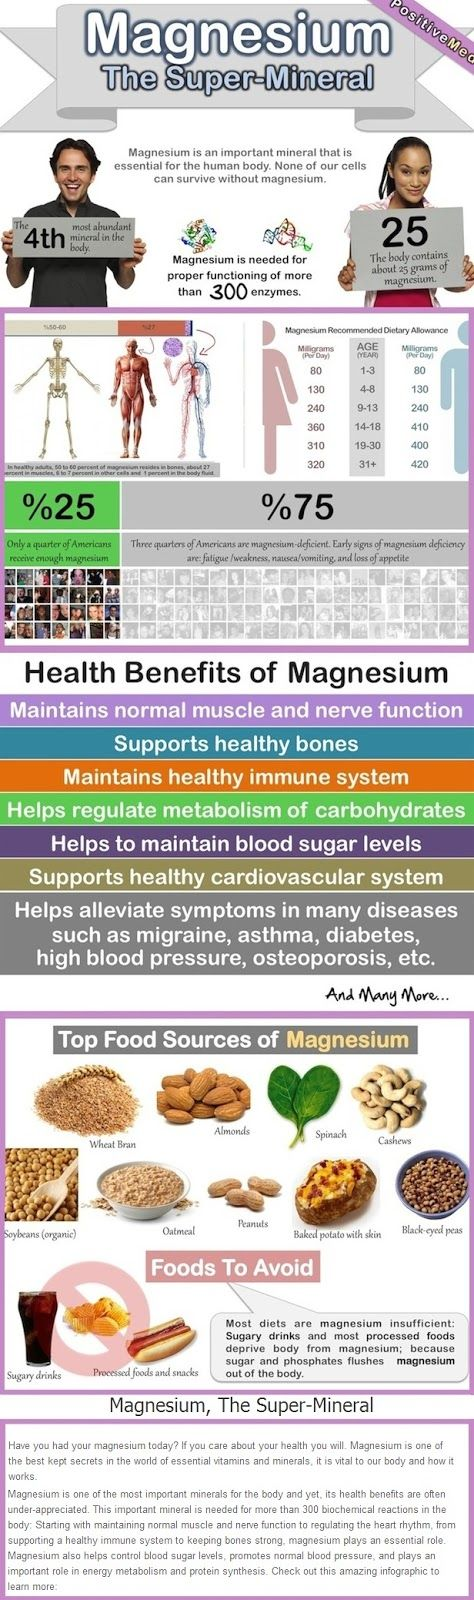 health and diet why magnesium is important Potassium is an important mineral with numerous functions in your body potassium is needed for healthy muscles and nerves and aids in bone health.